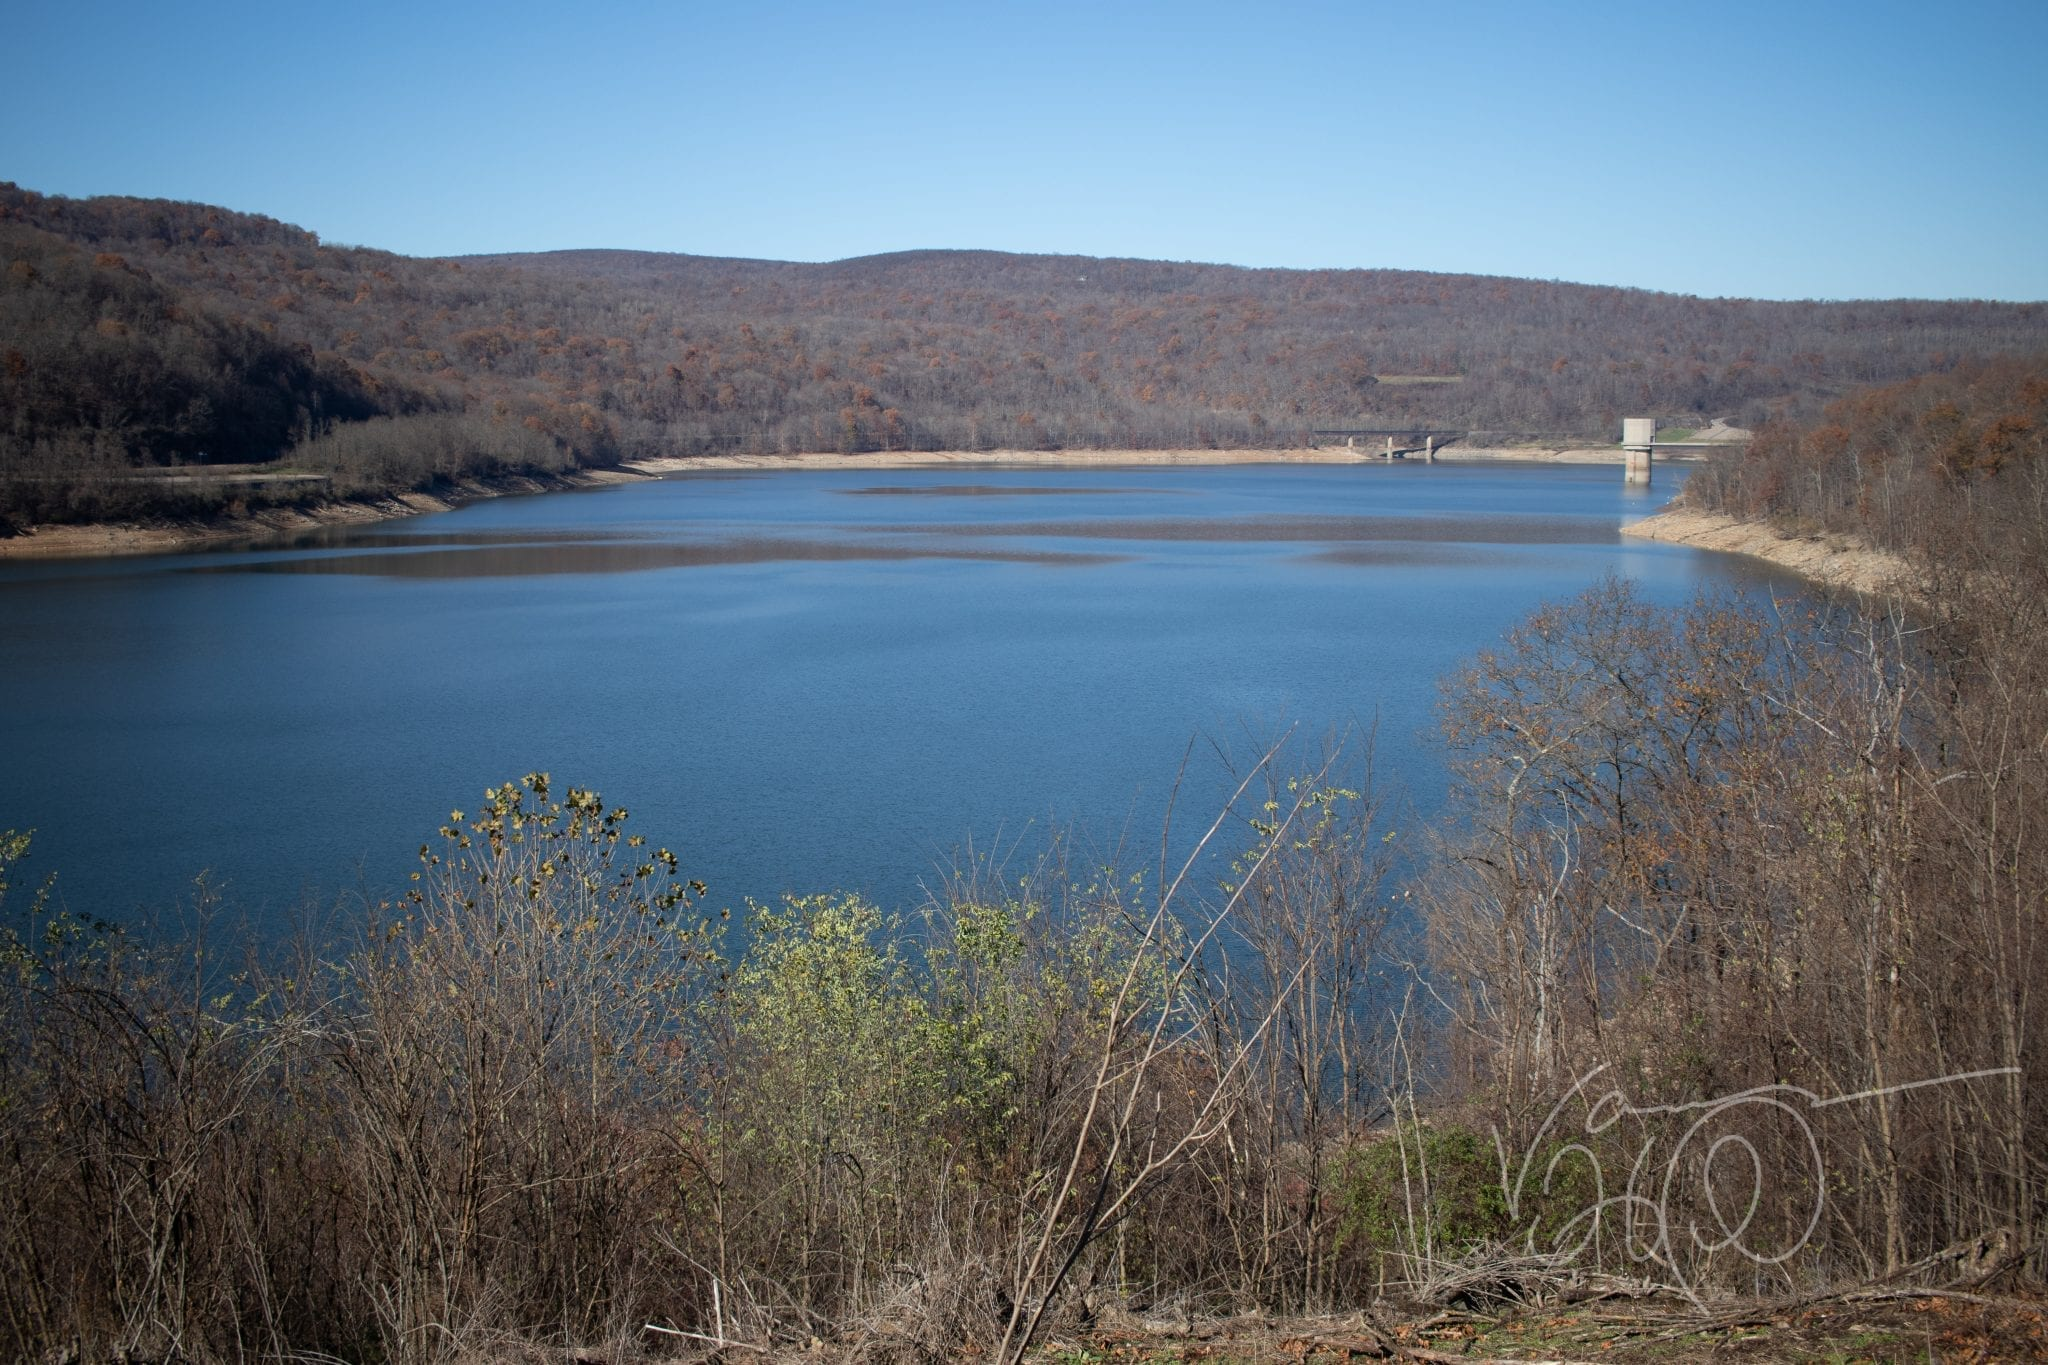 Cool blue water of Jennings Randolph Lake North Branch Potomac River in late fall